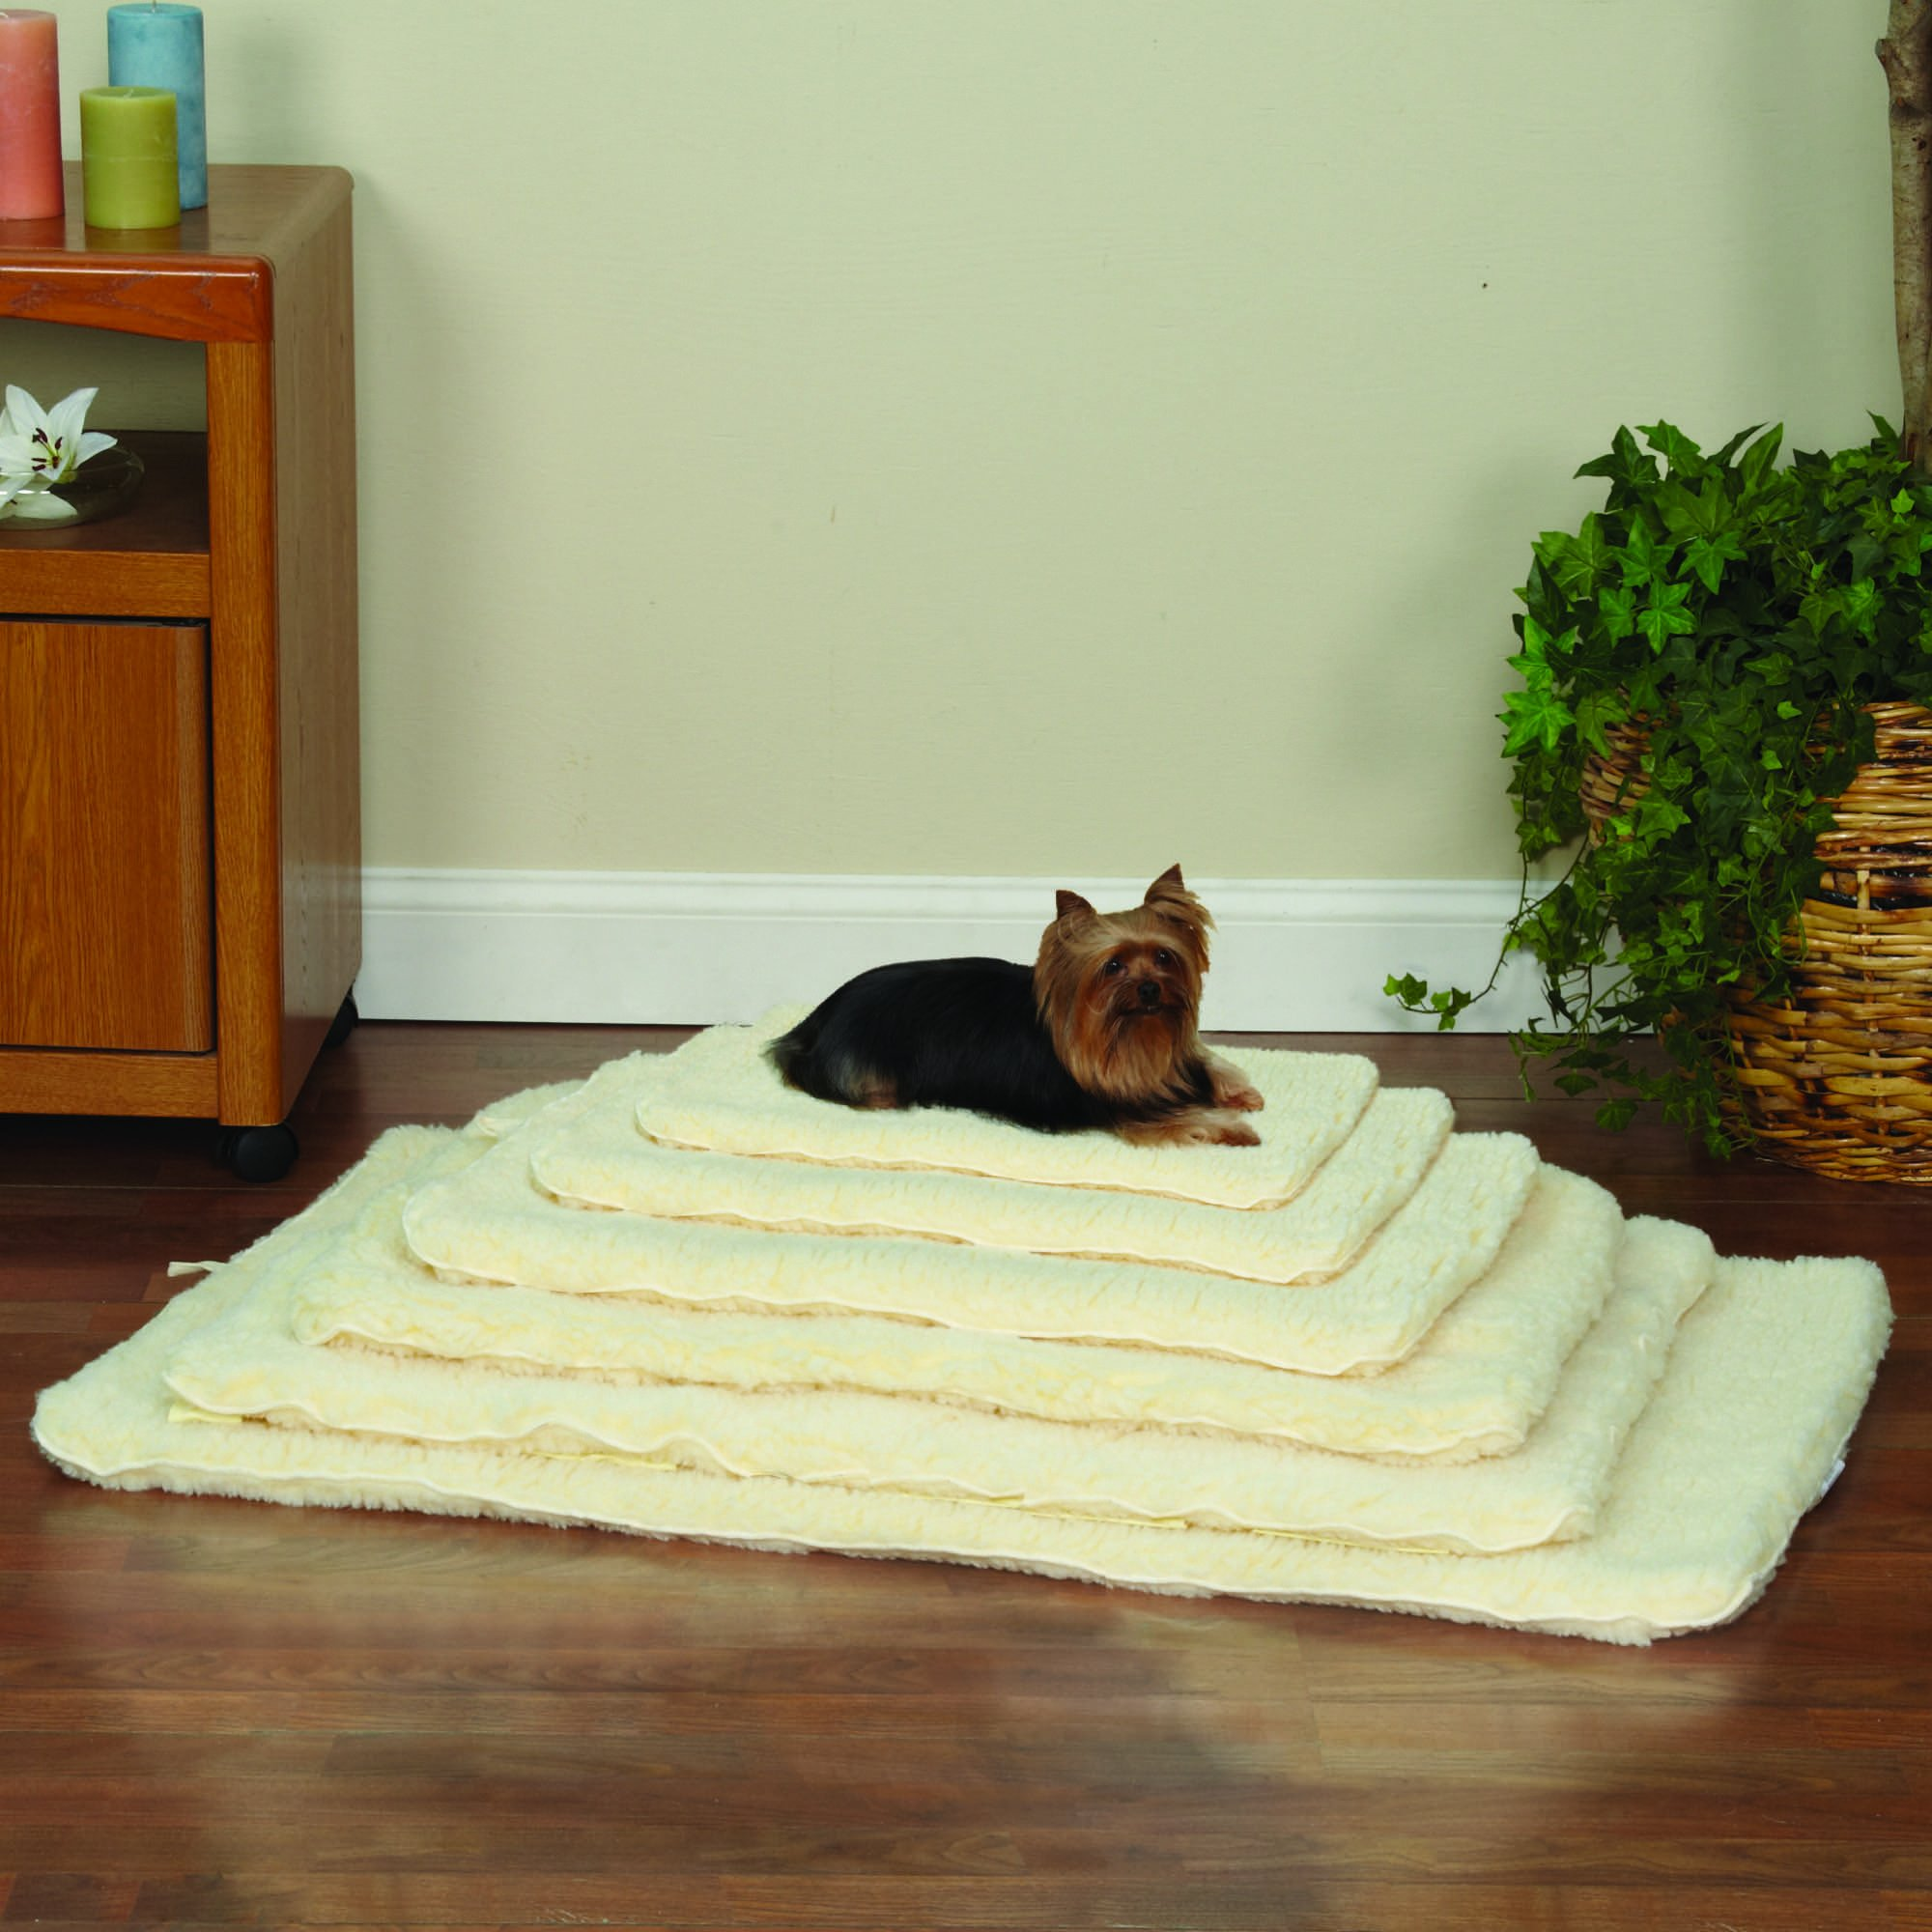 Slumber Pet Double-Sided Sherpa Mats  -  Versatile and Comfortable Mats for Dogs and Cats - Medium/Large, Natural